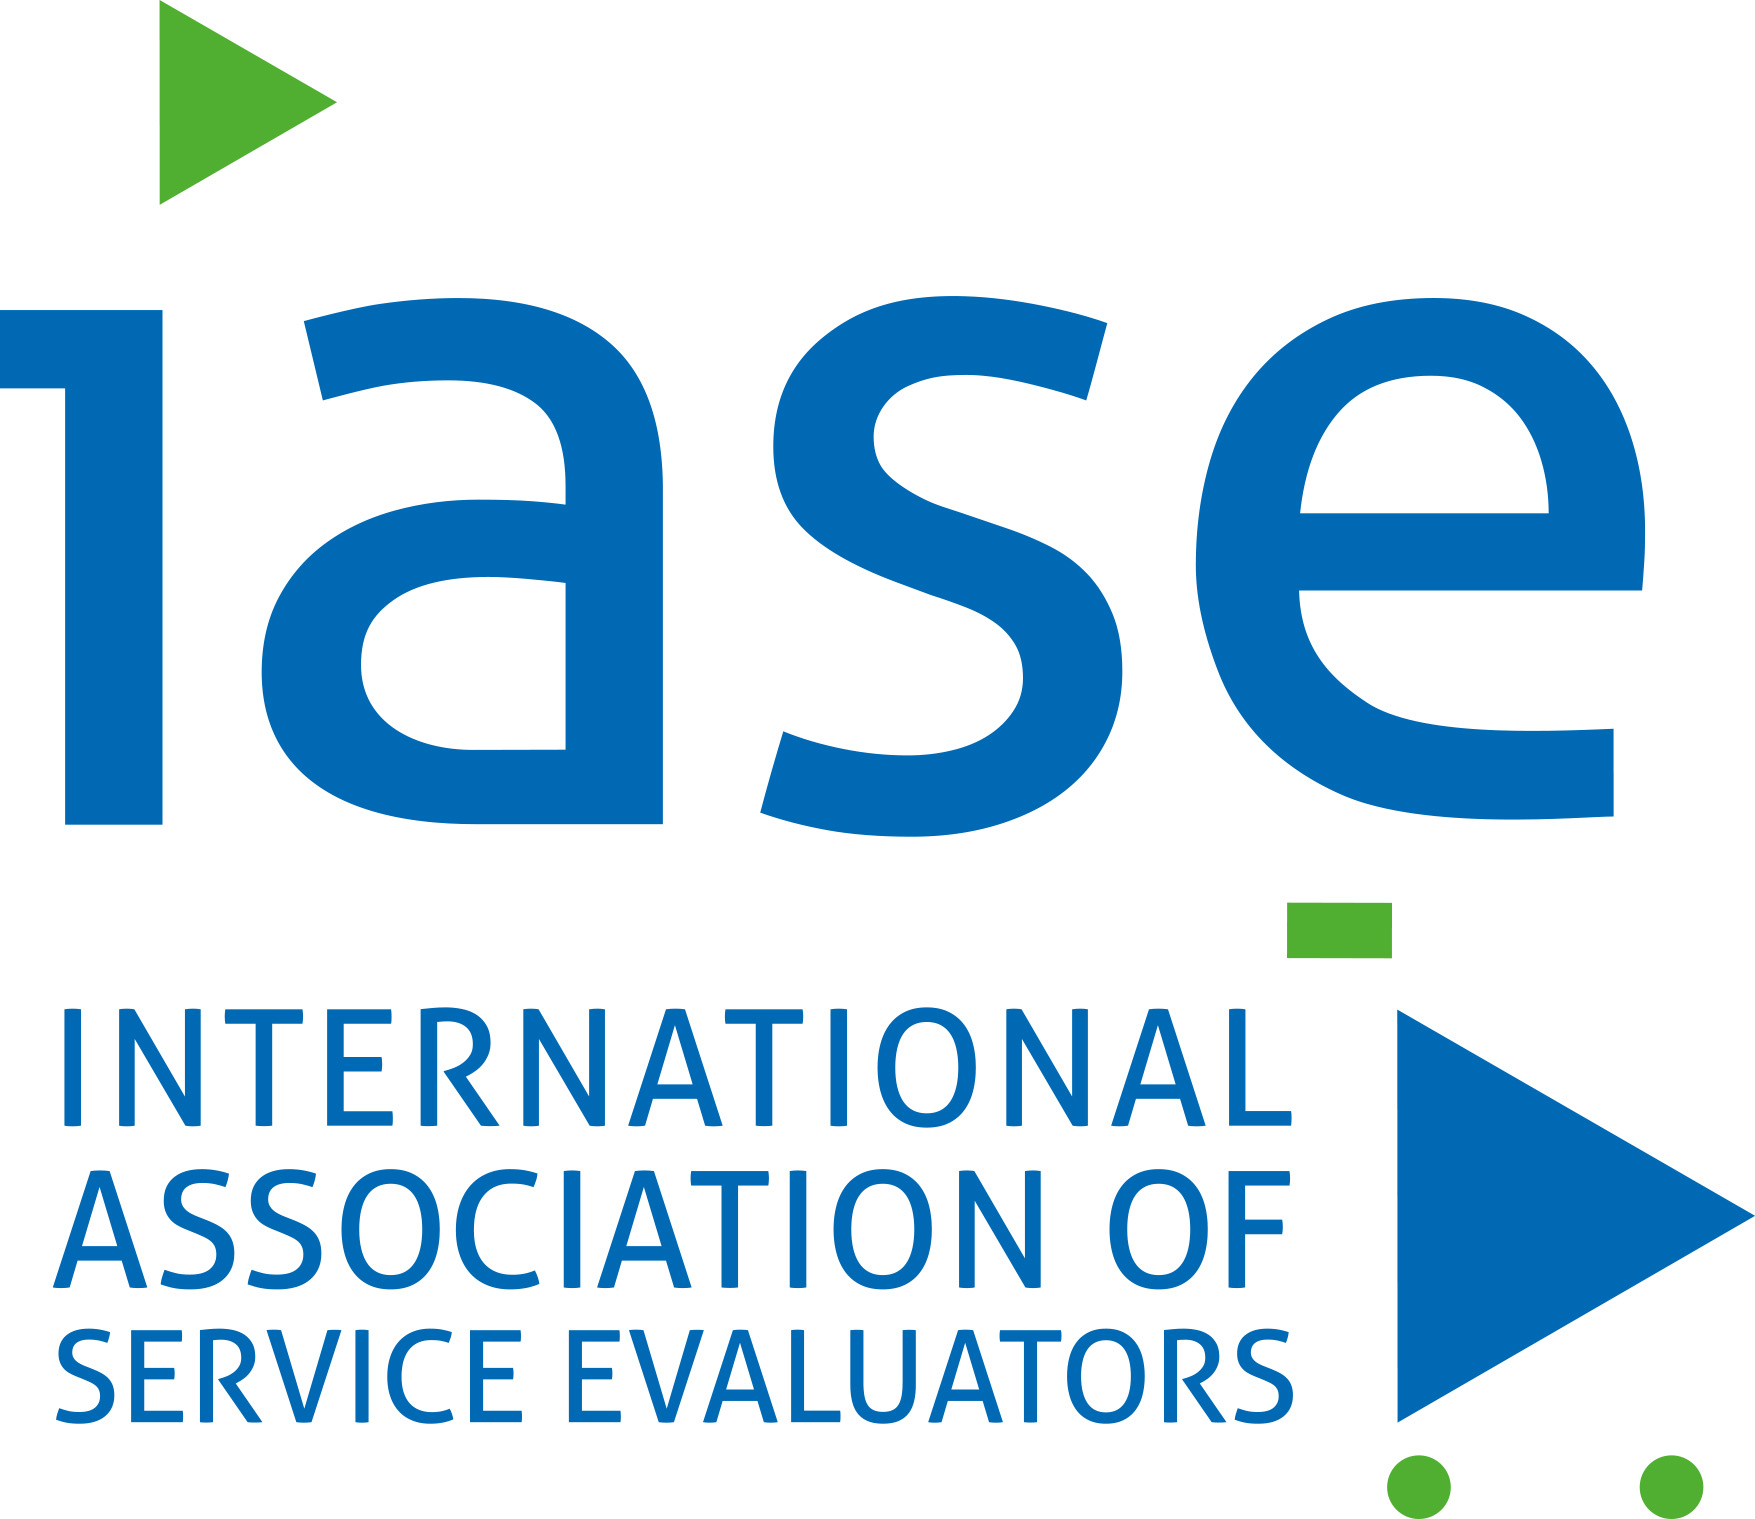 International Association of Service Evaluators